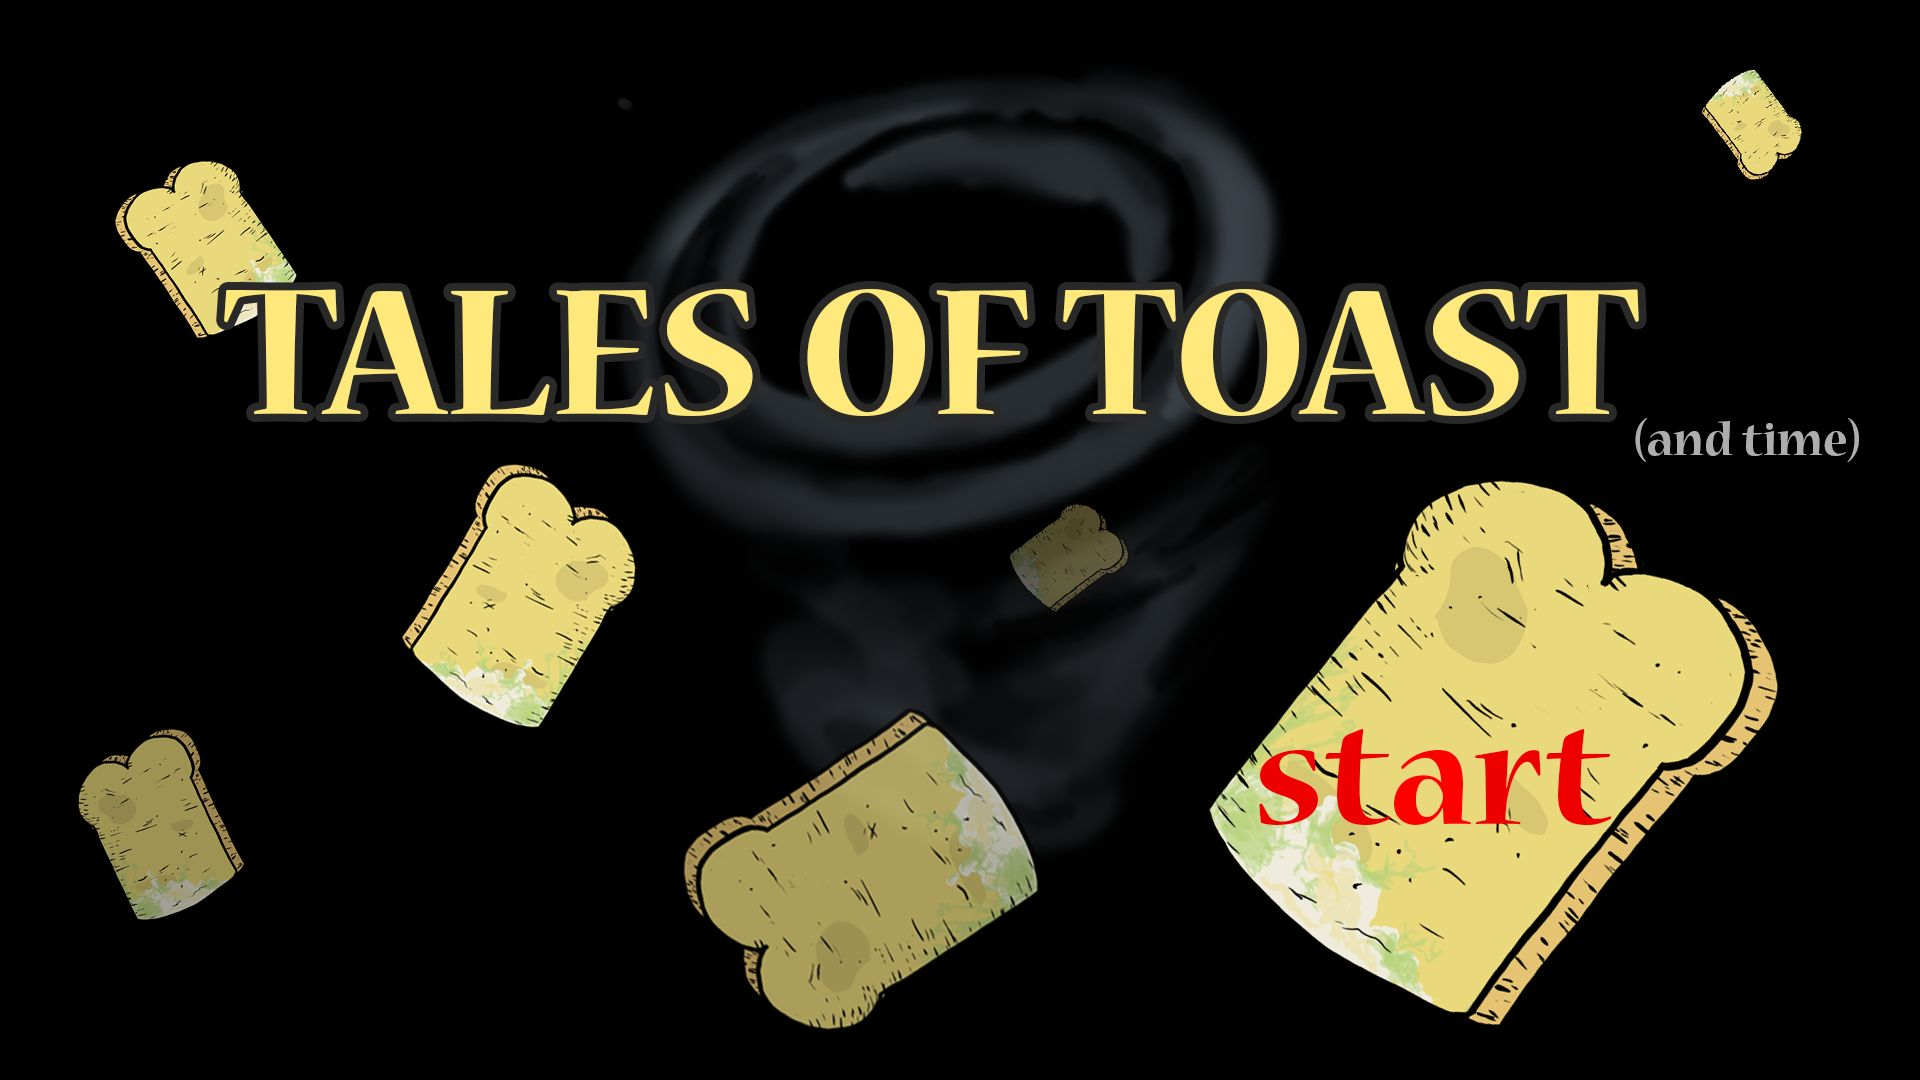 tales-of-toast